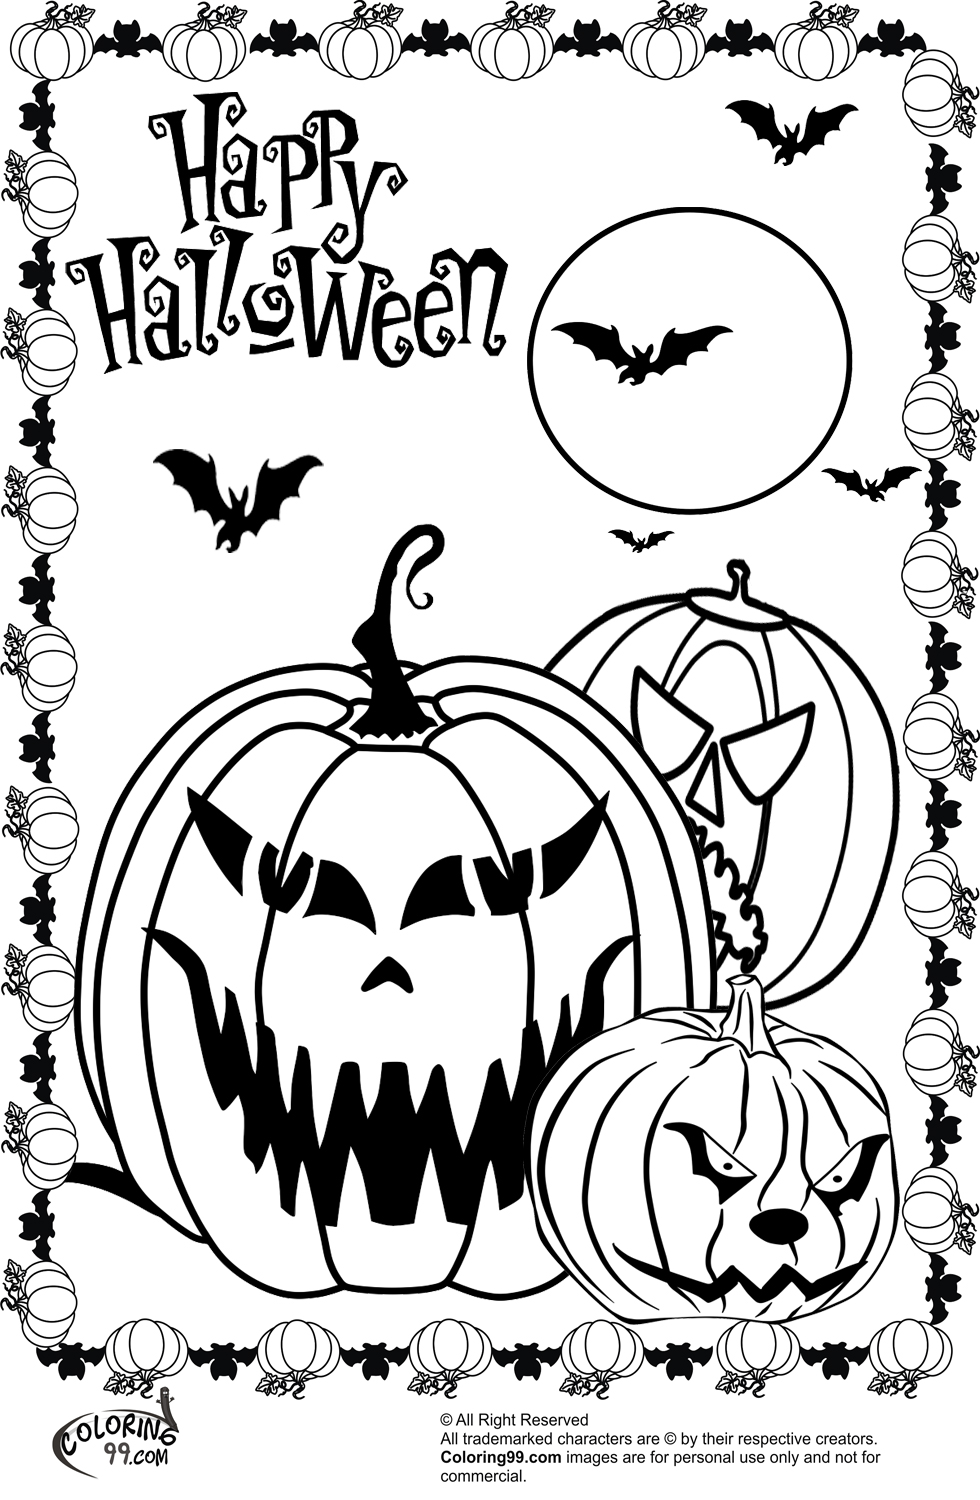 printable halloween coloring pages october 2013 team colors halloween coloring printable pages